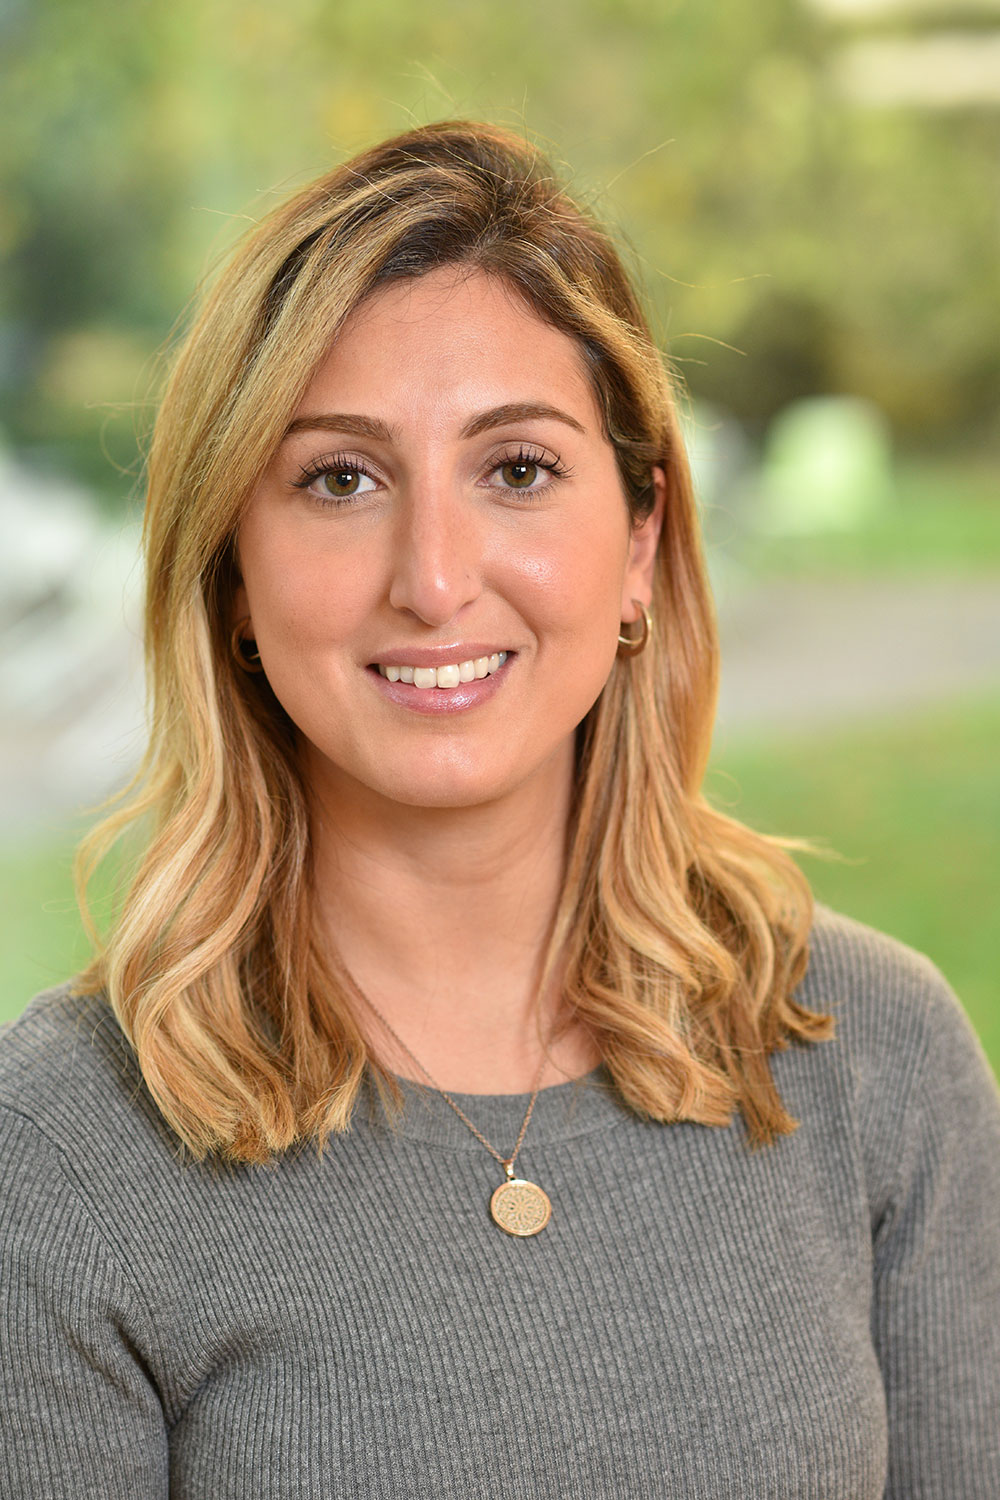 Zoe Hajifanis, Director of Sales and Marketing